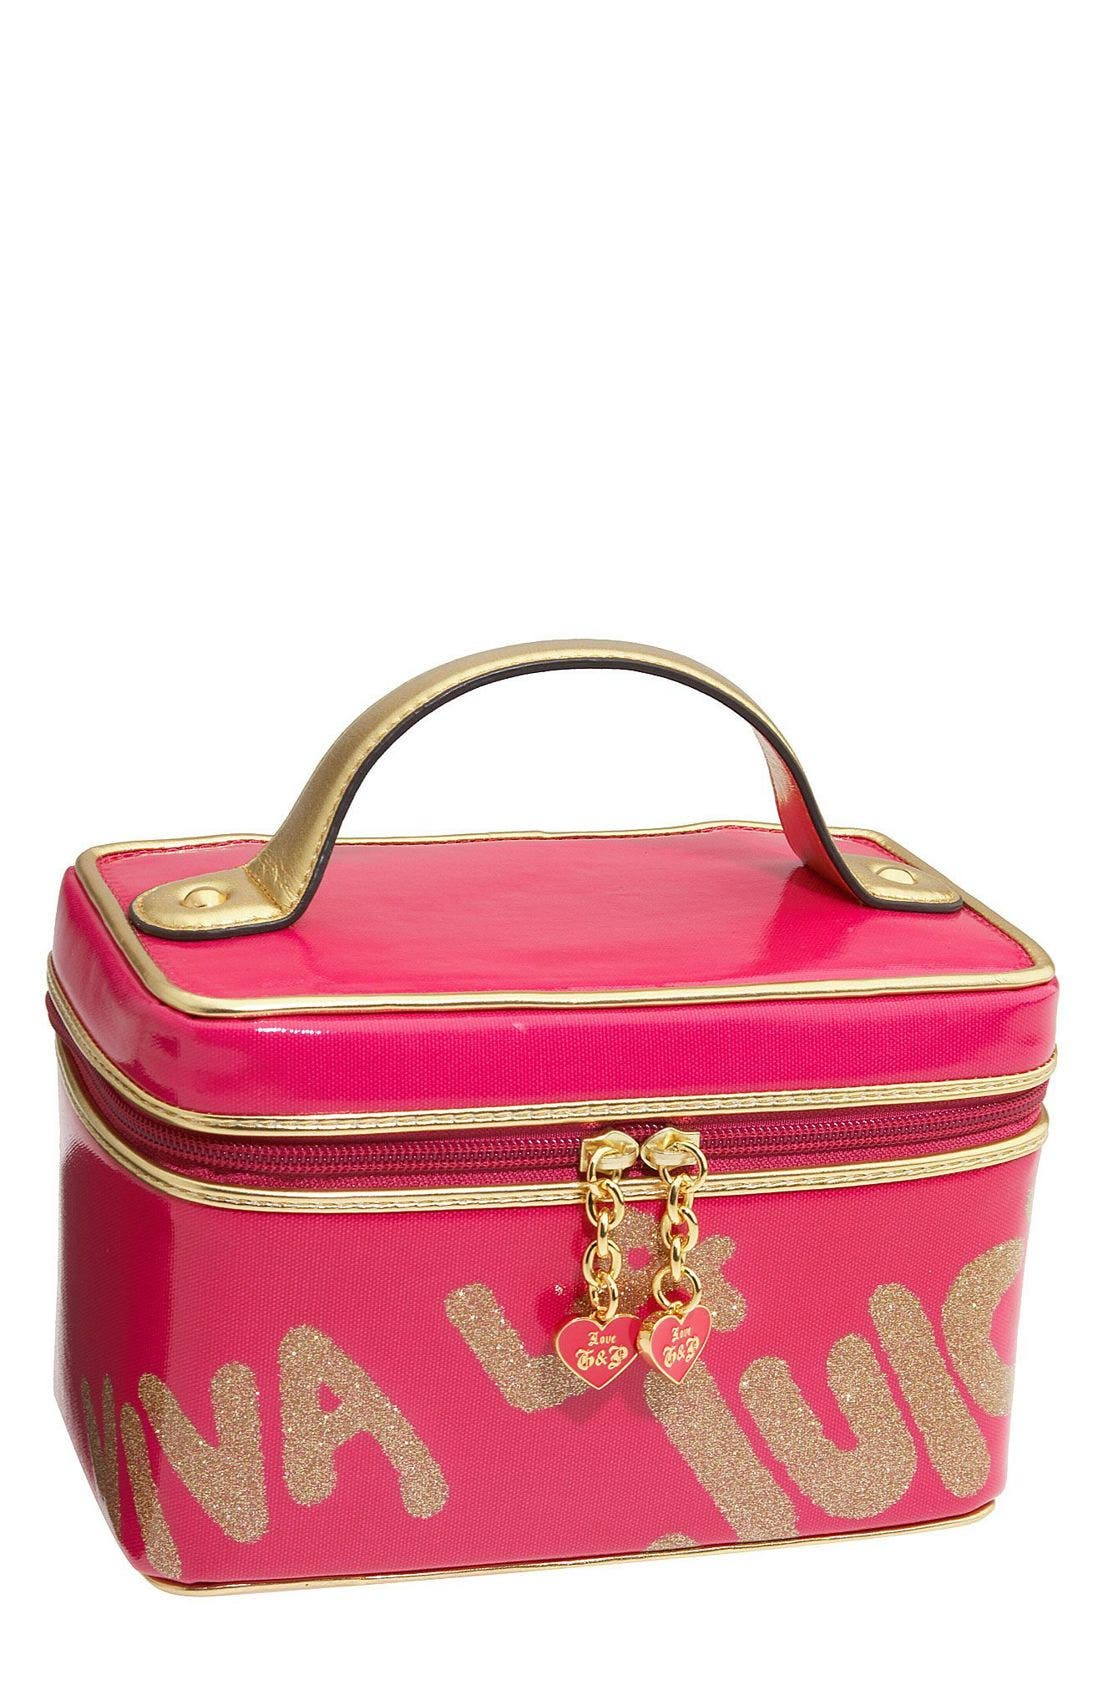 'Viva la Juicy' Cosmetics Case,                             Main thumbnail 1, color,                             659